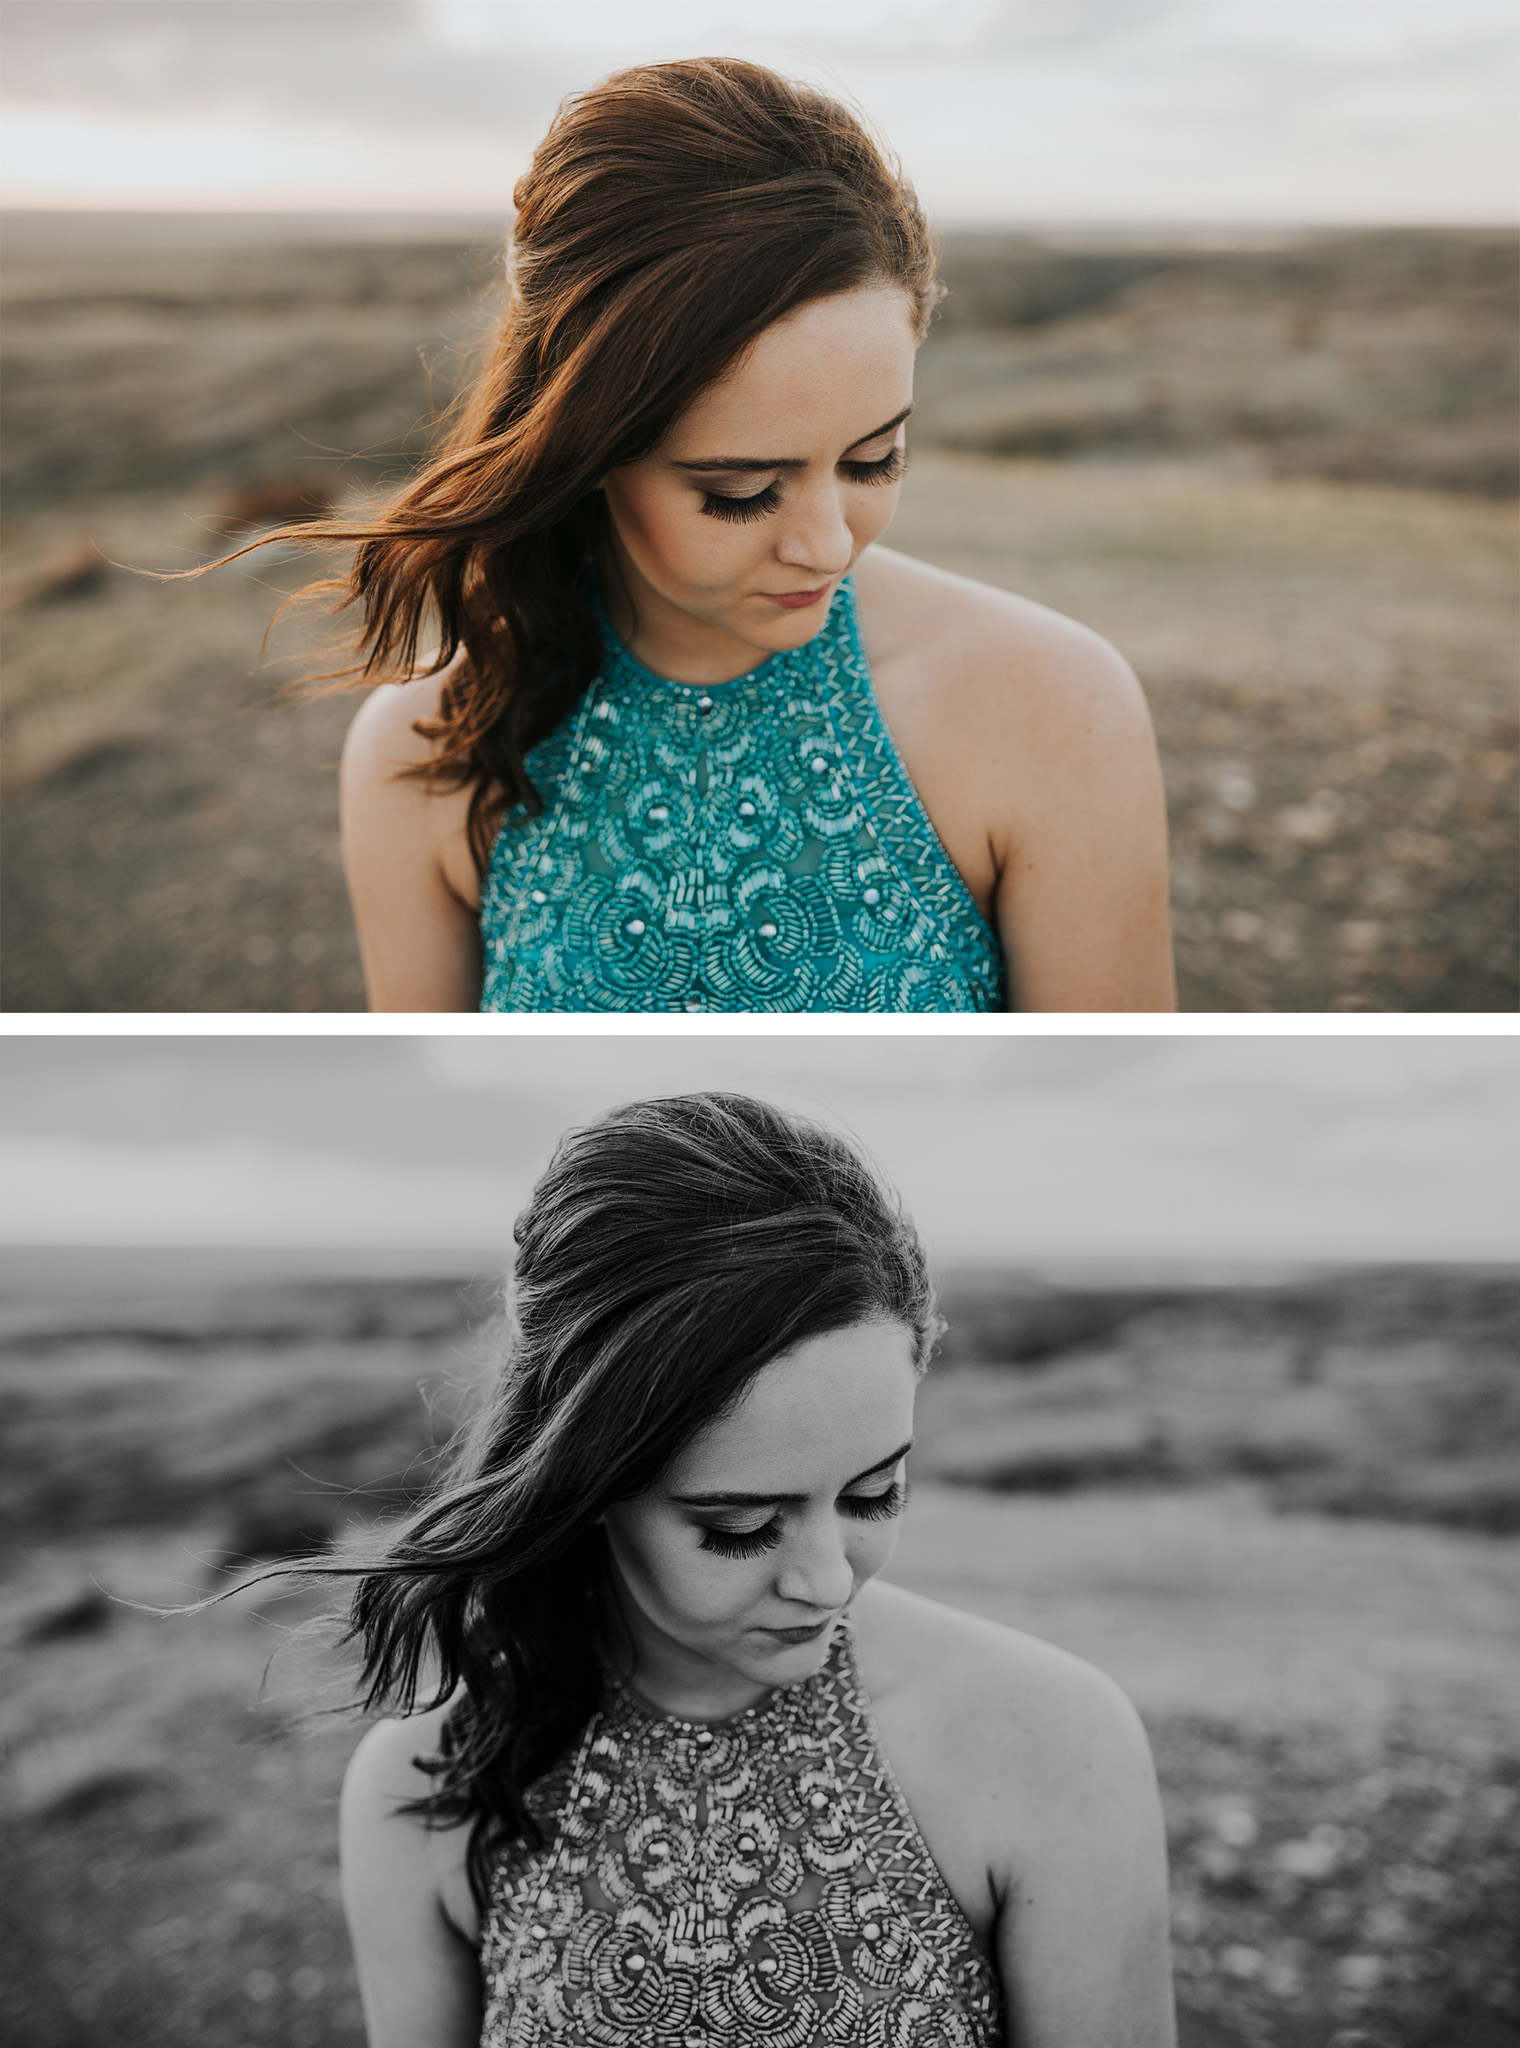 colour and black and white closeups of grad girl senior looking down hair blowing softly